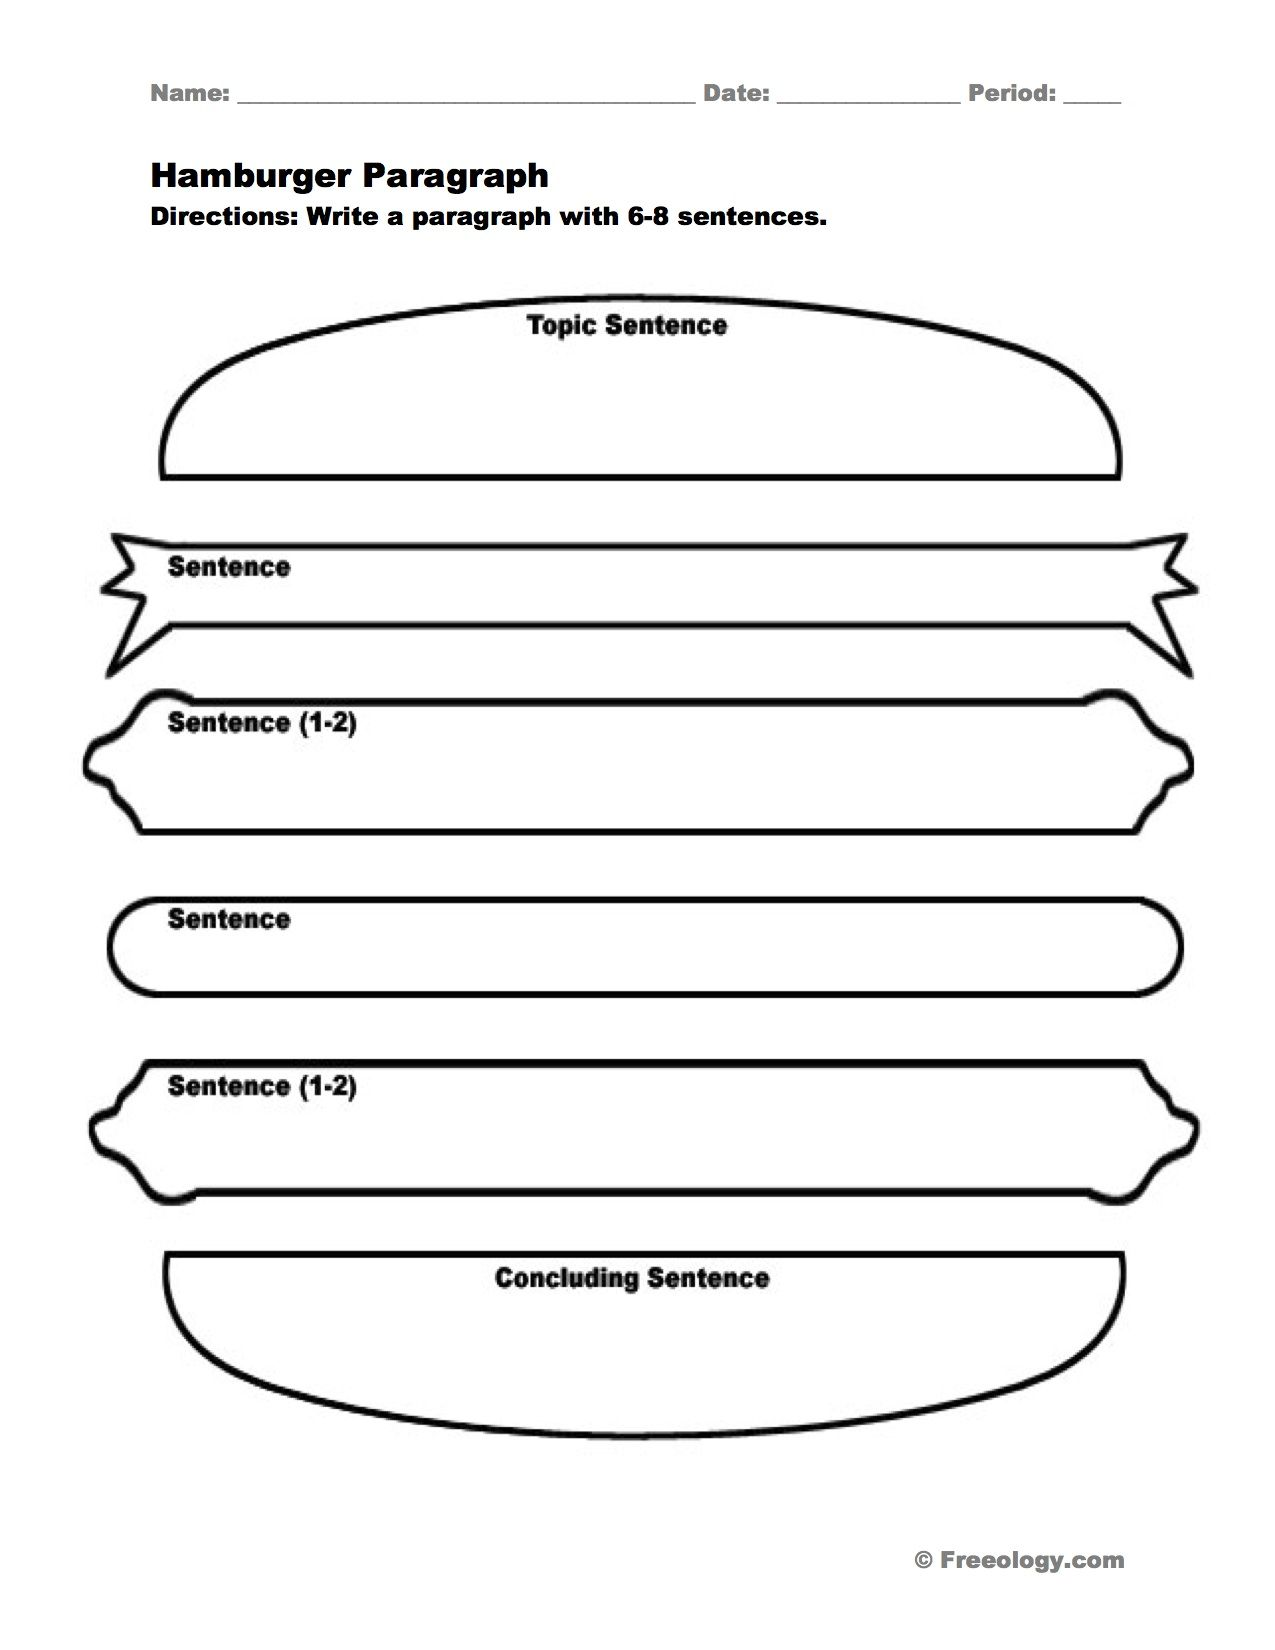 Worksheets Hamburger Paragraph Worksheet hamburger paragraph i love this graphic organizer to help students write nice full paragraphs